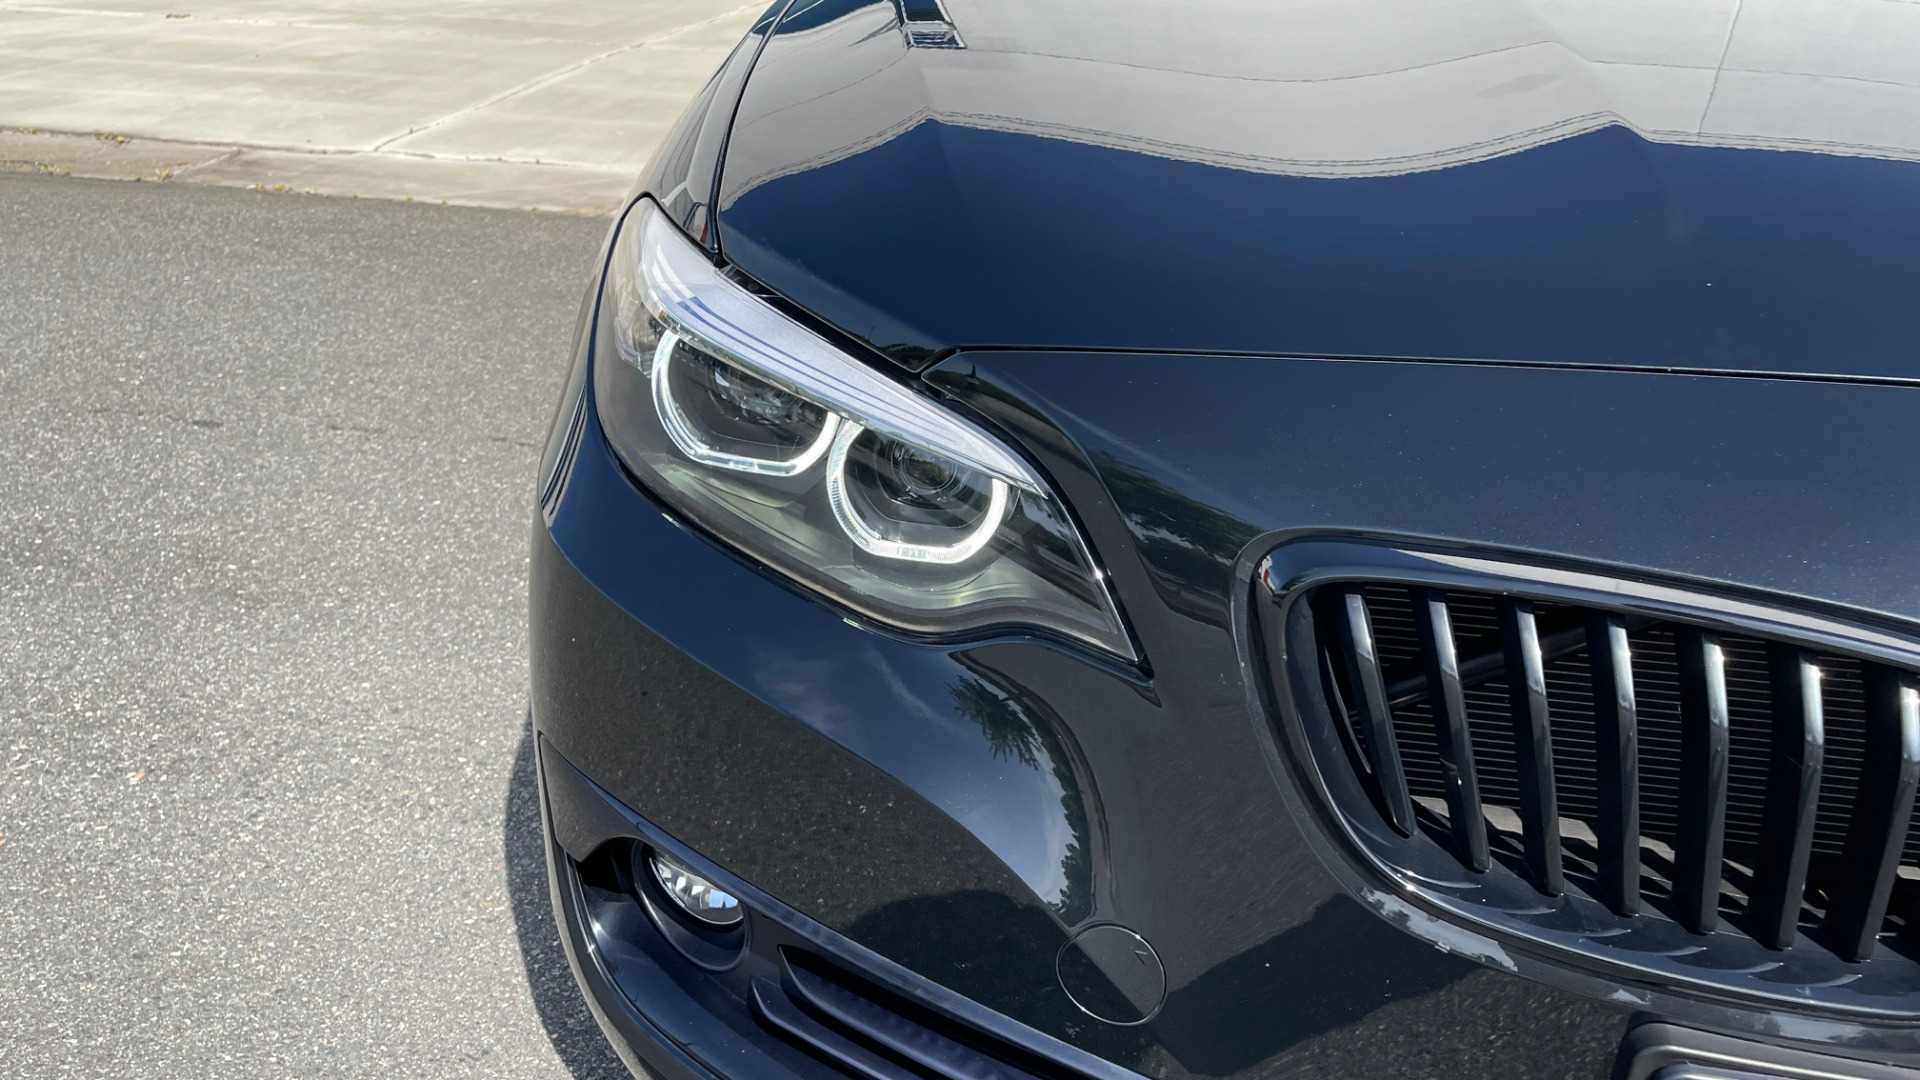 Used 2018 BMW 2 SERIES 230I XDRIVE PREMIUM / CONV PKG / NAV / SUNROOF / REARVIEW for sale $30,795 at Formula Imports in Charlotte NC 28227 12